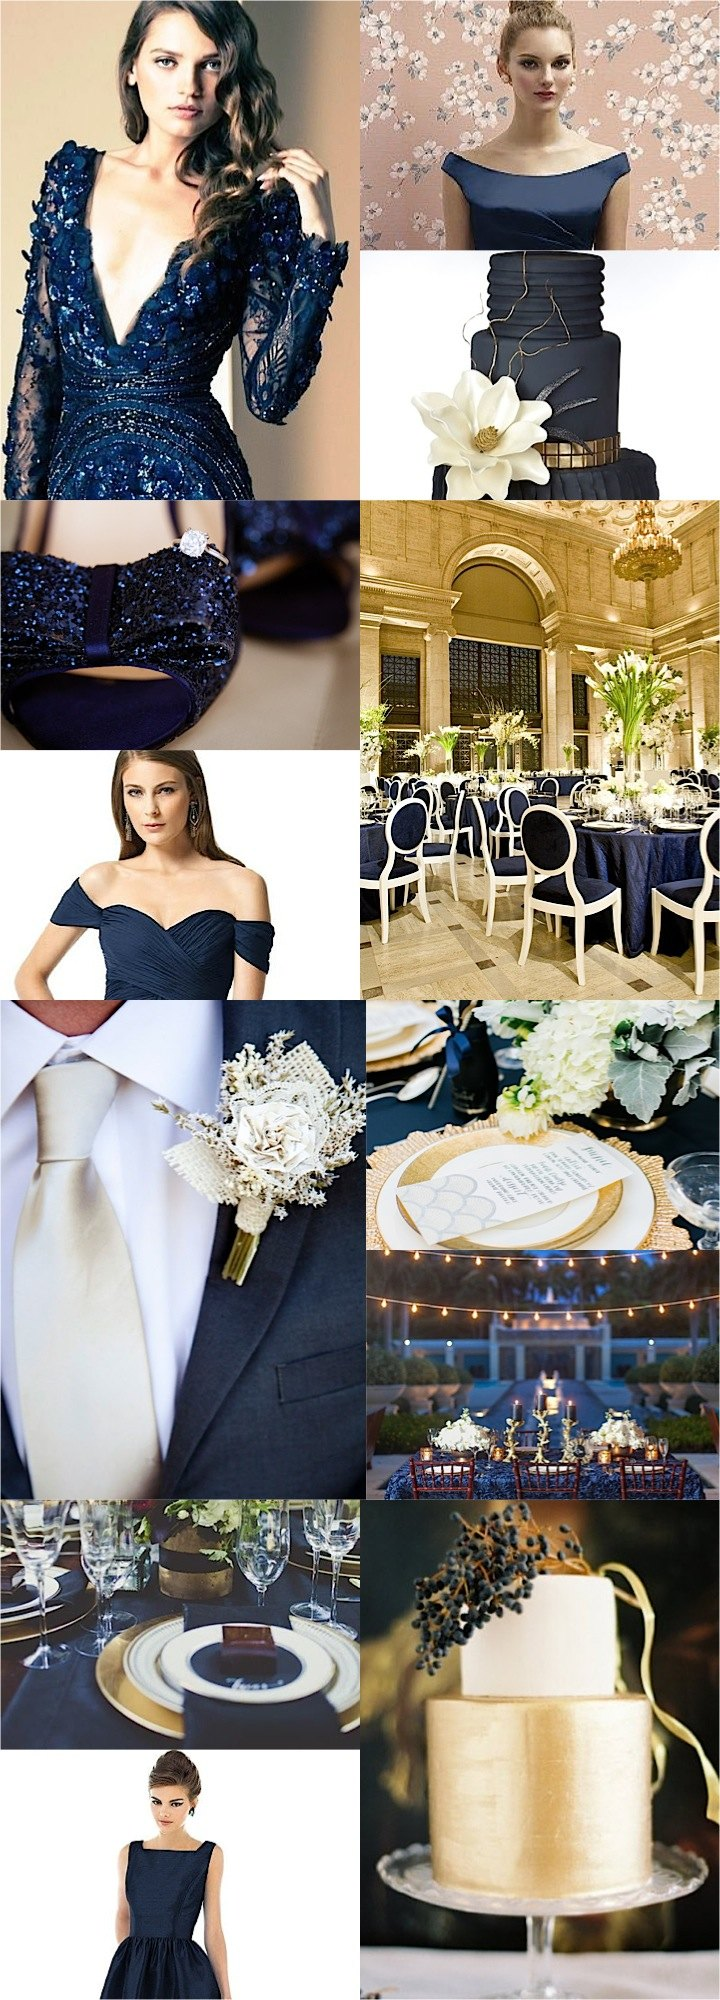 wedding decorations colors wedding ideas 26 04112015 ky 9095